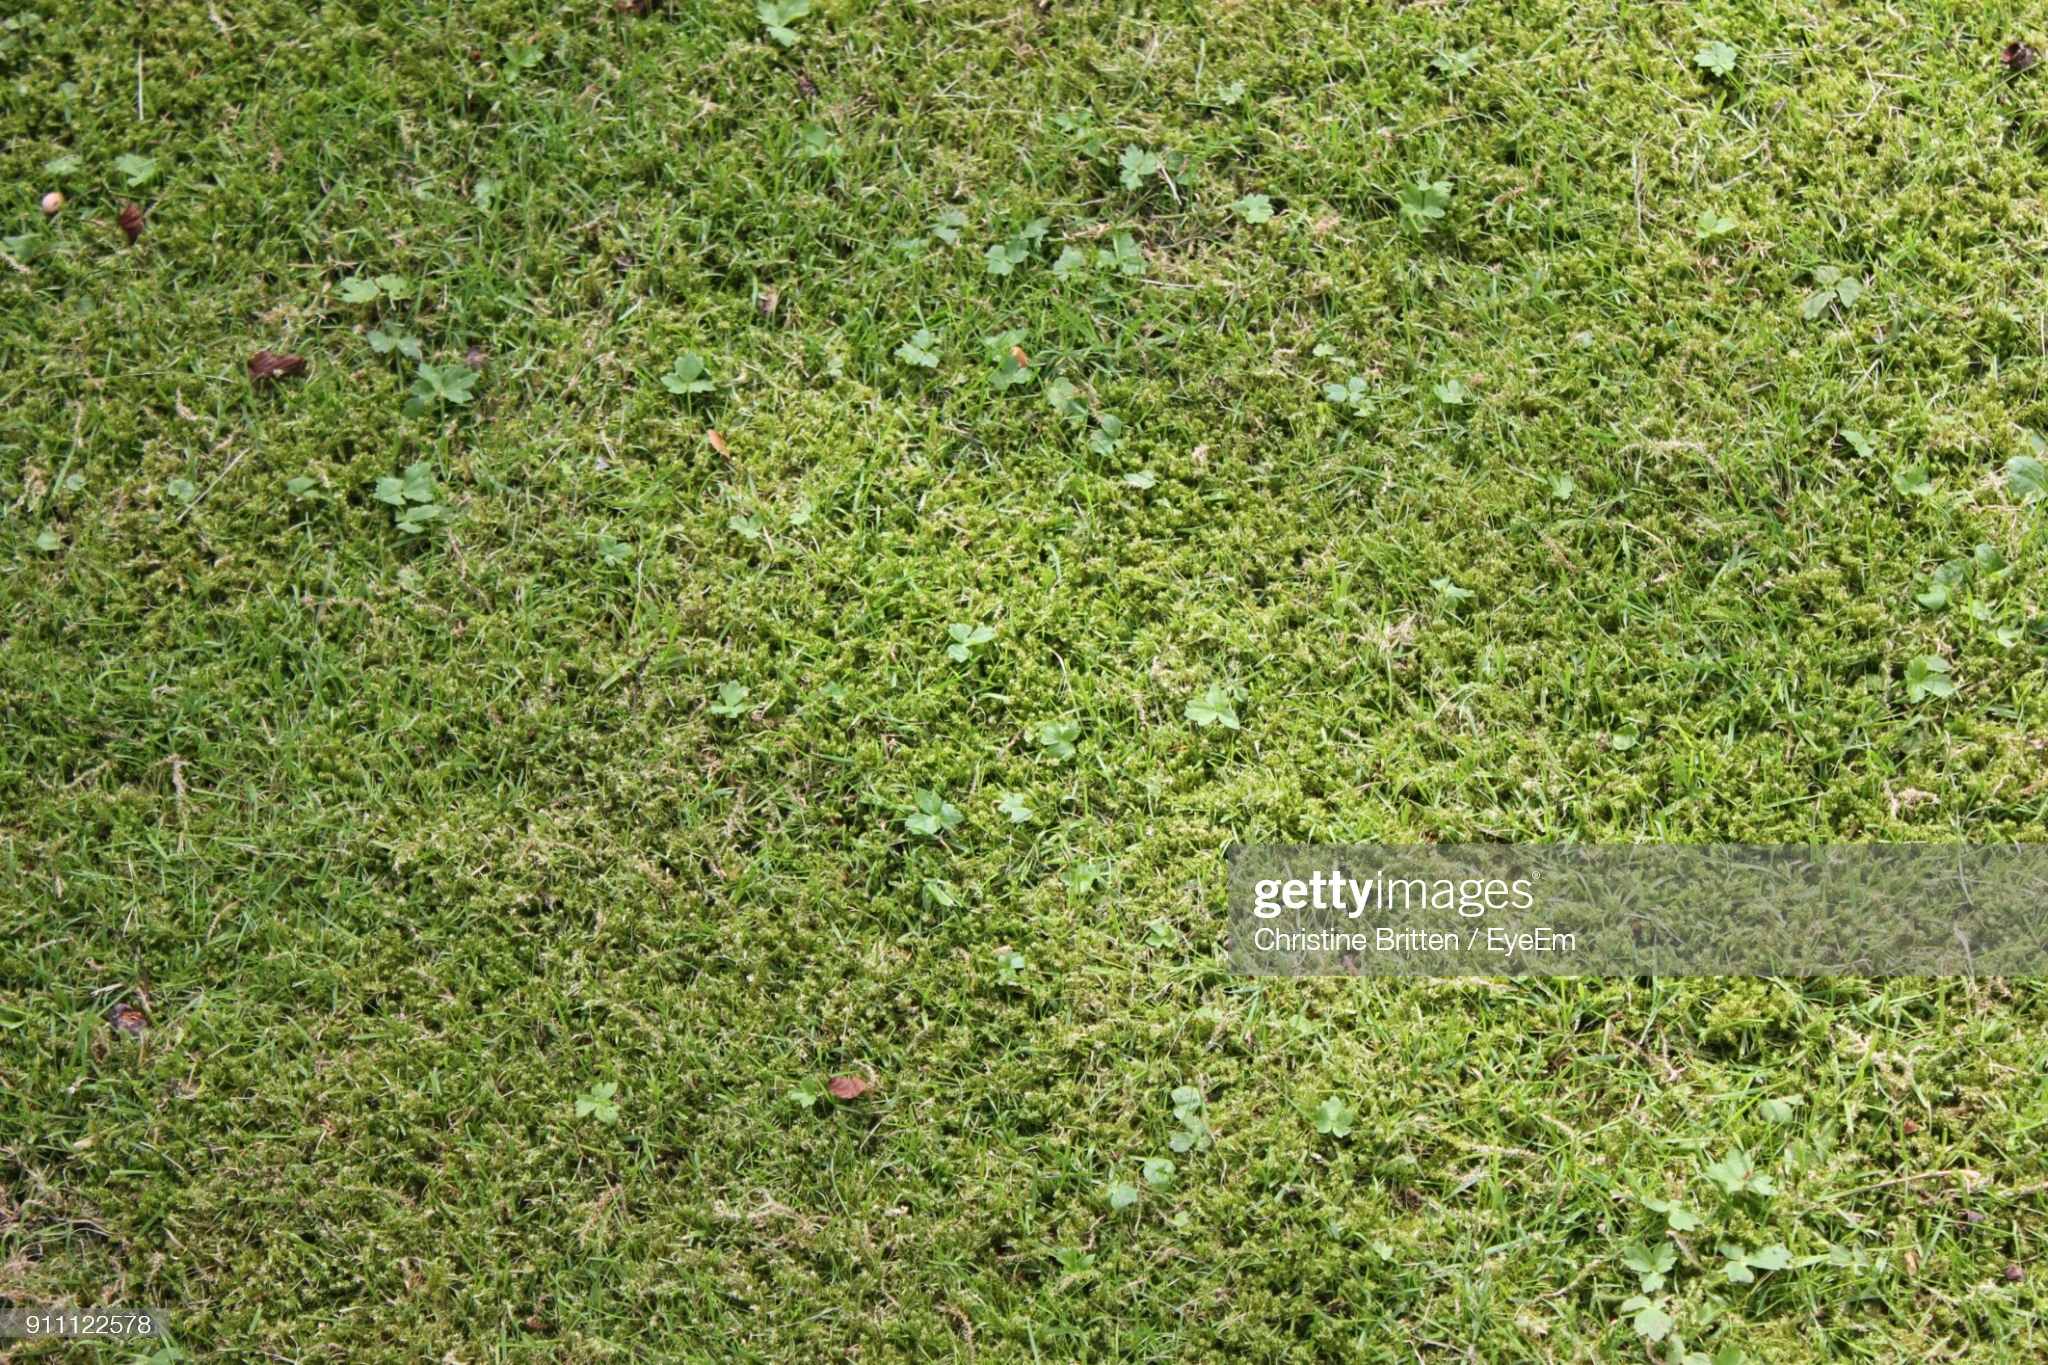 Mossy Grass Background by Christine aka stine1 on Getty Images